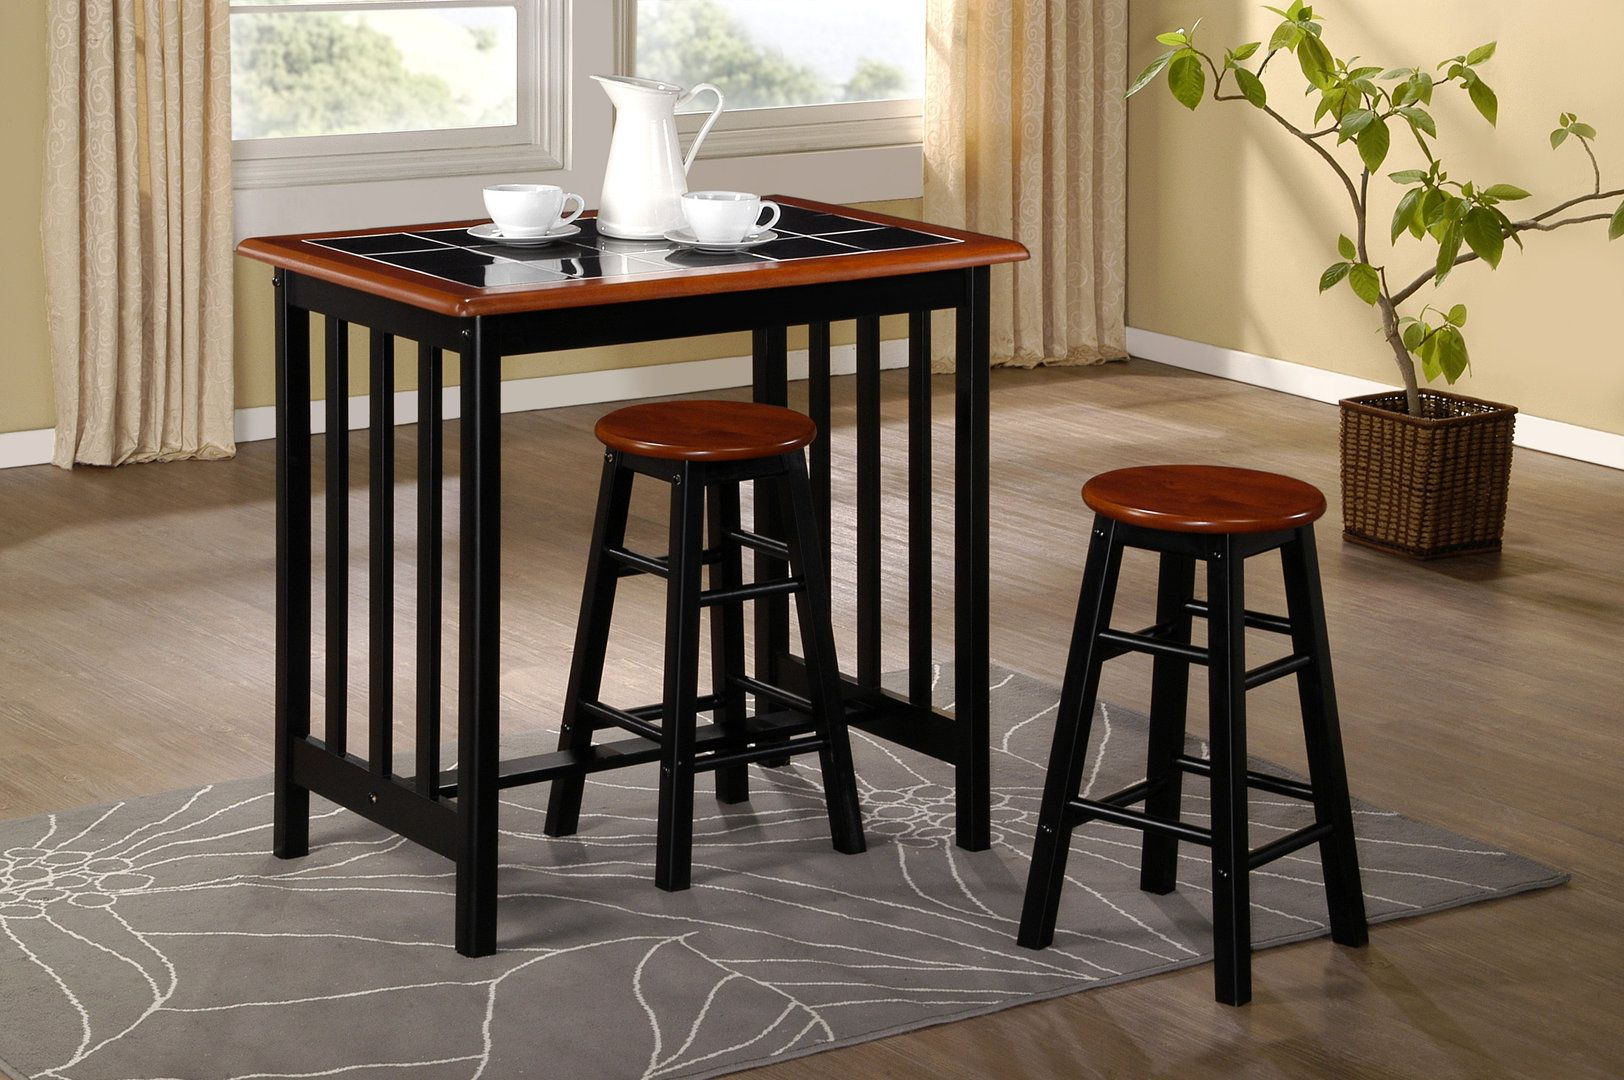 Excellent Breakfast Bar Dining Set Kitchen Table And 2 Stools Black Beutiful Home Inspiration Semekurdistantinfo